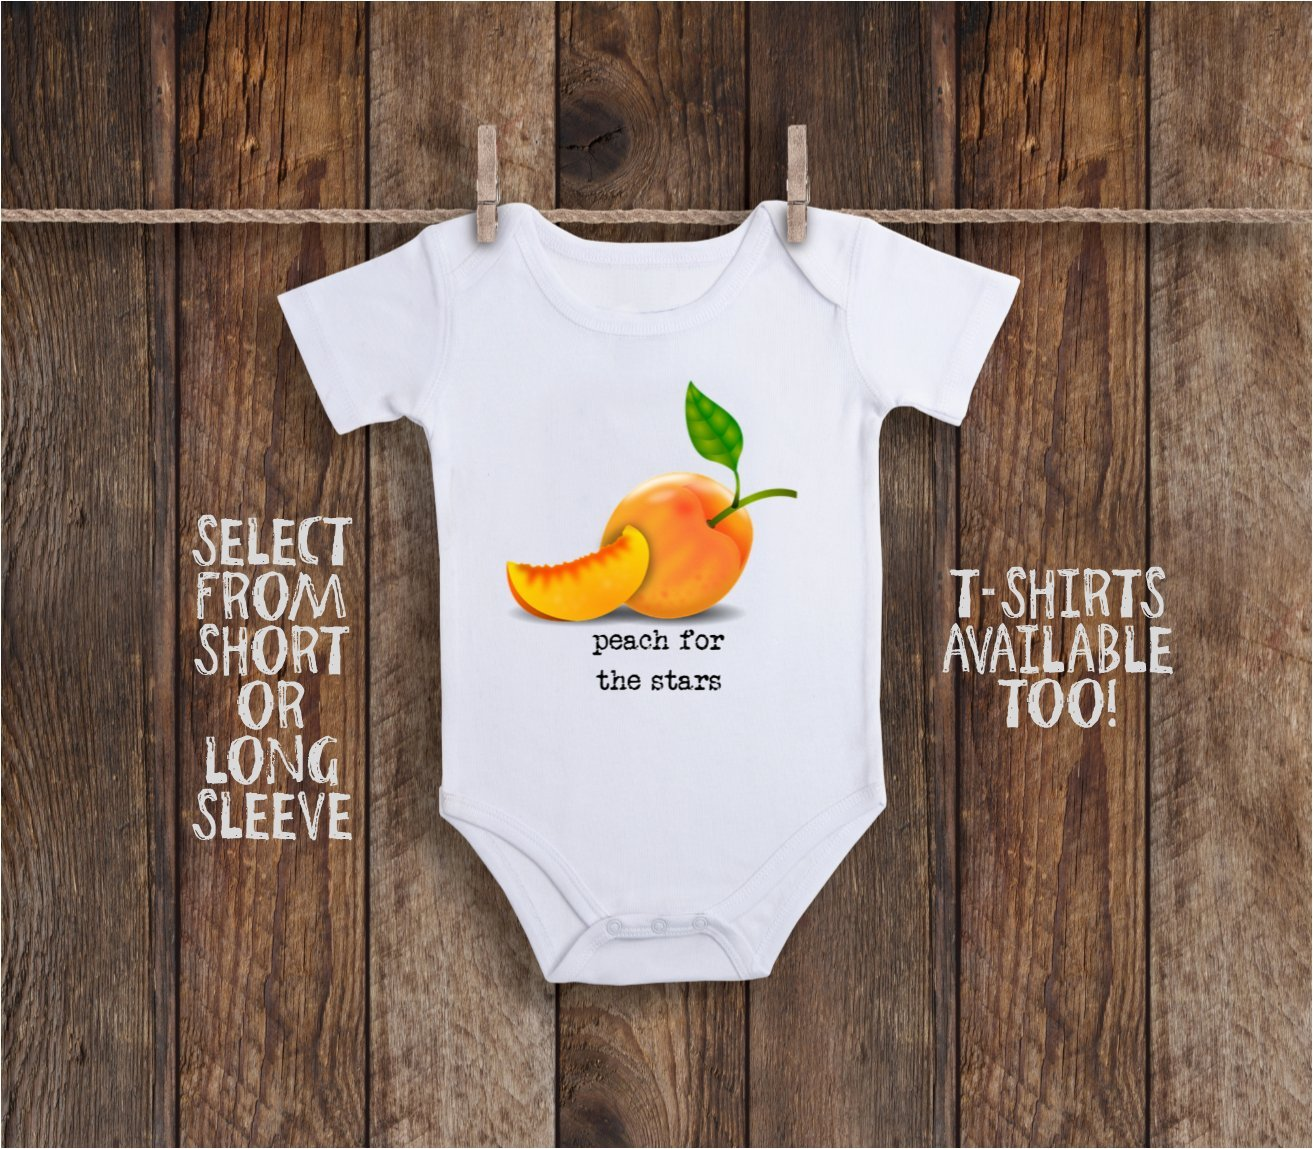 Funny Peach For The Stars Baby Bodysuit With Fruit Puns For Inspirational - Reach